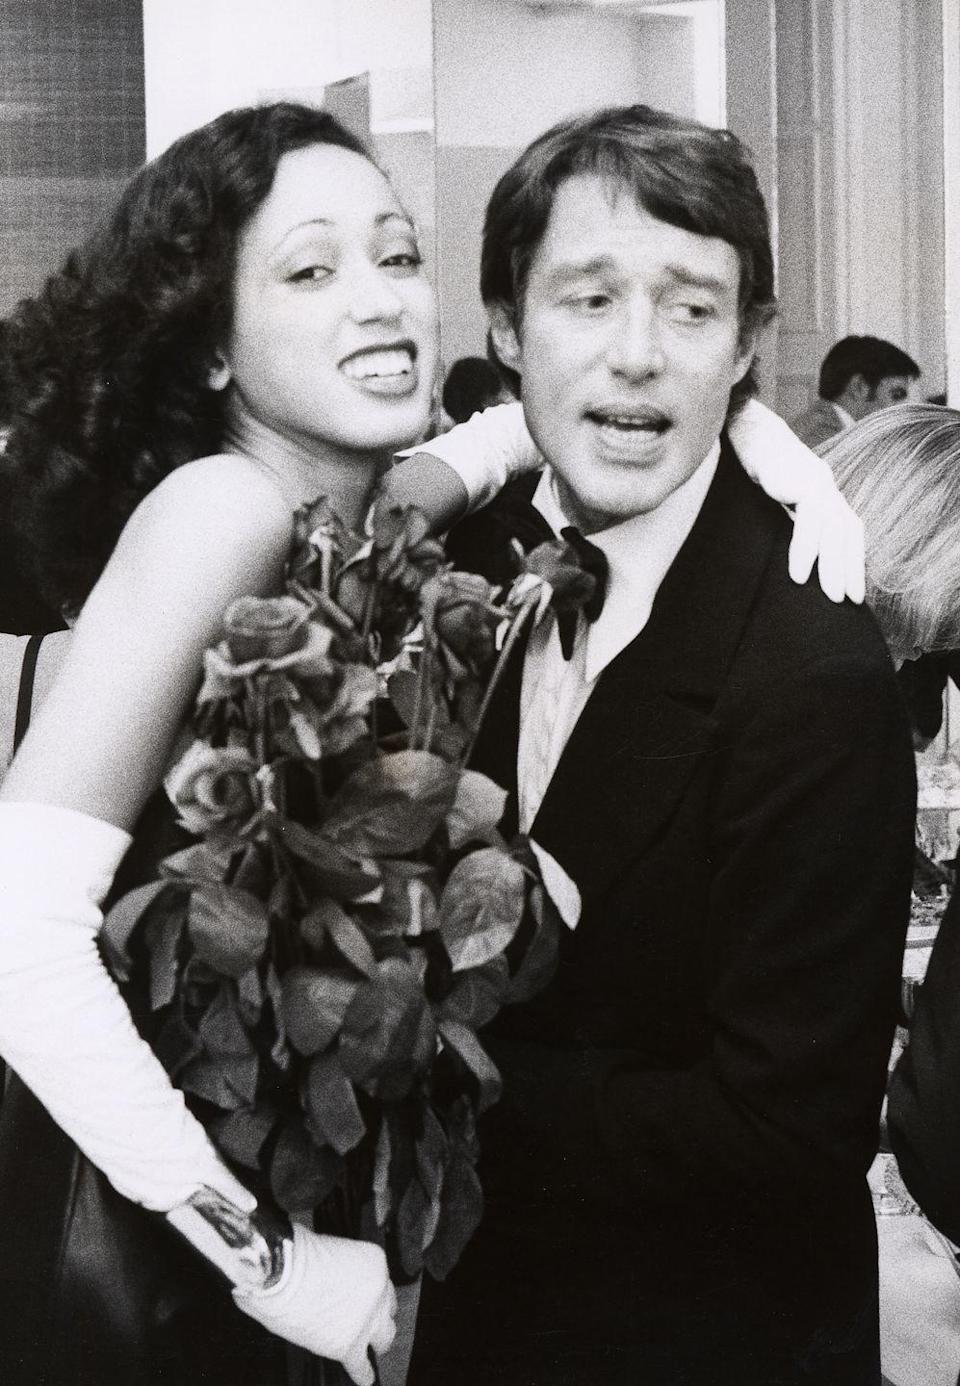 """<p>The designer was known for being close with his models, or """"his girls."""" Model Pat Cleveland was a mainstay in Halston's shows. The two are shown here at a party in his studio.</p>"""